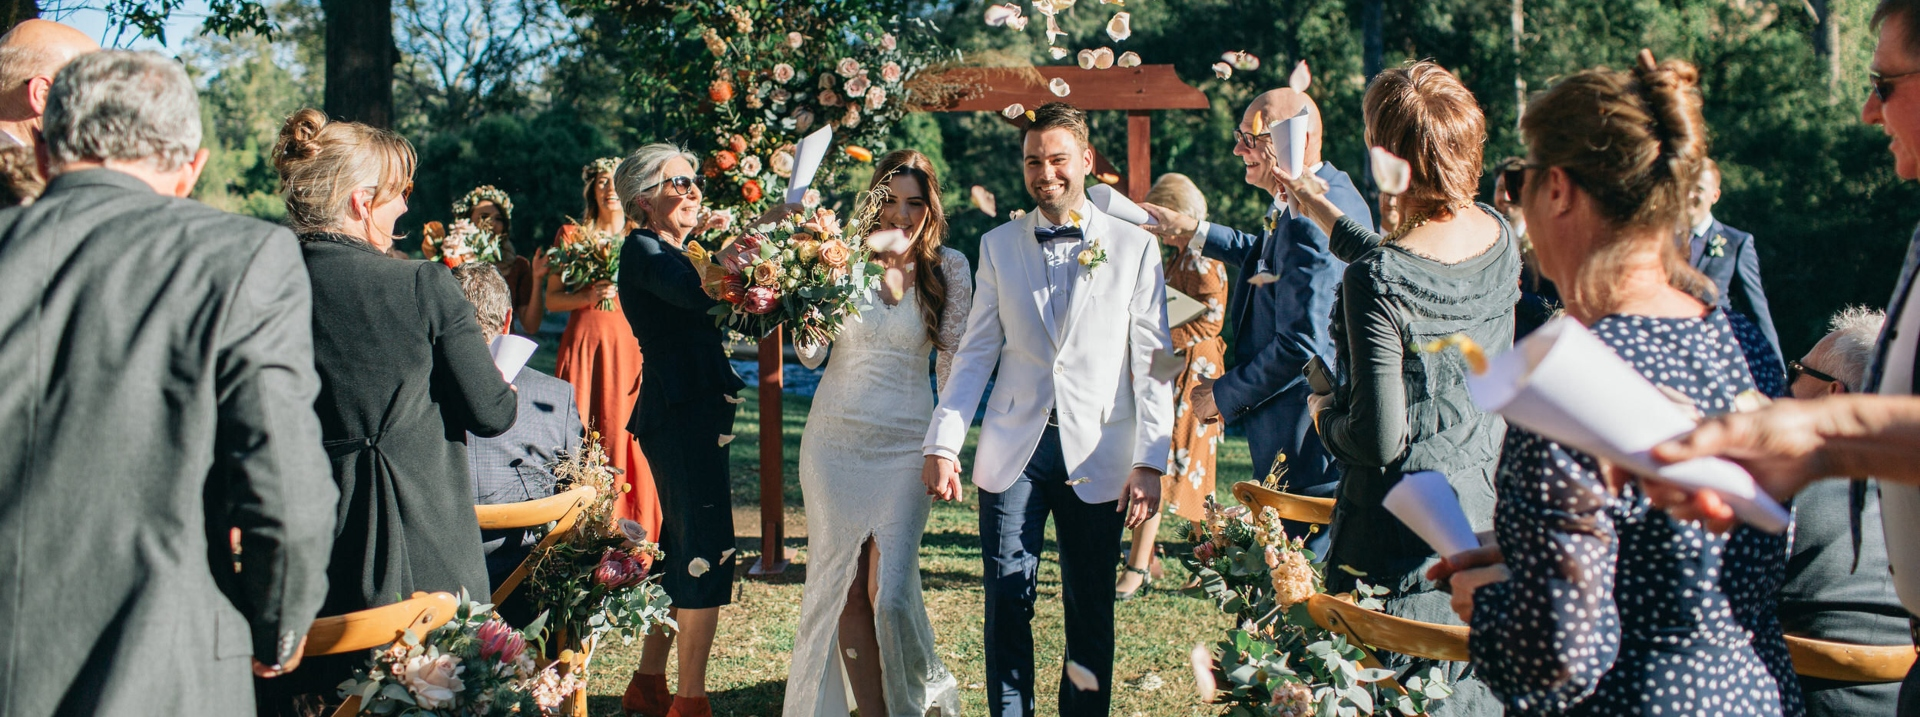 Petal shower for those just married feels